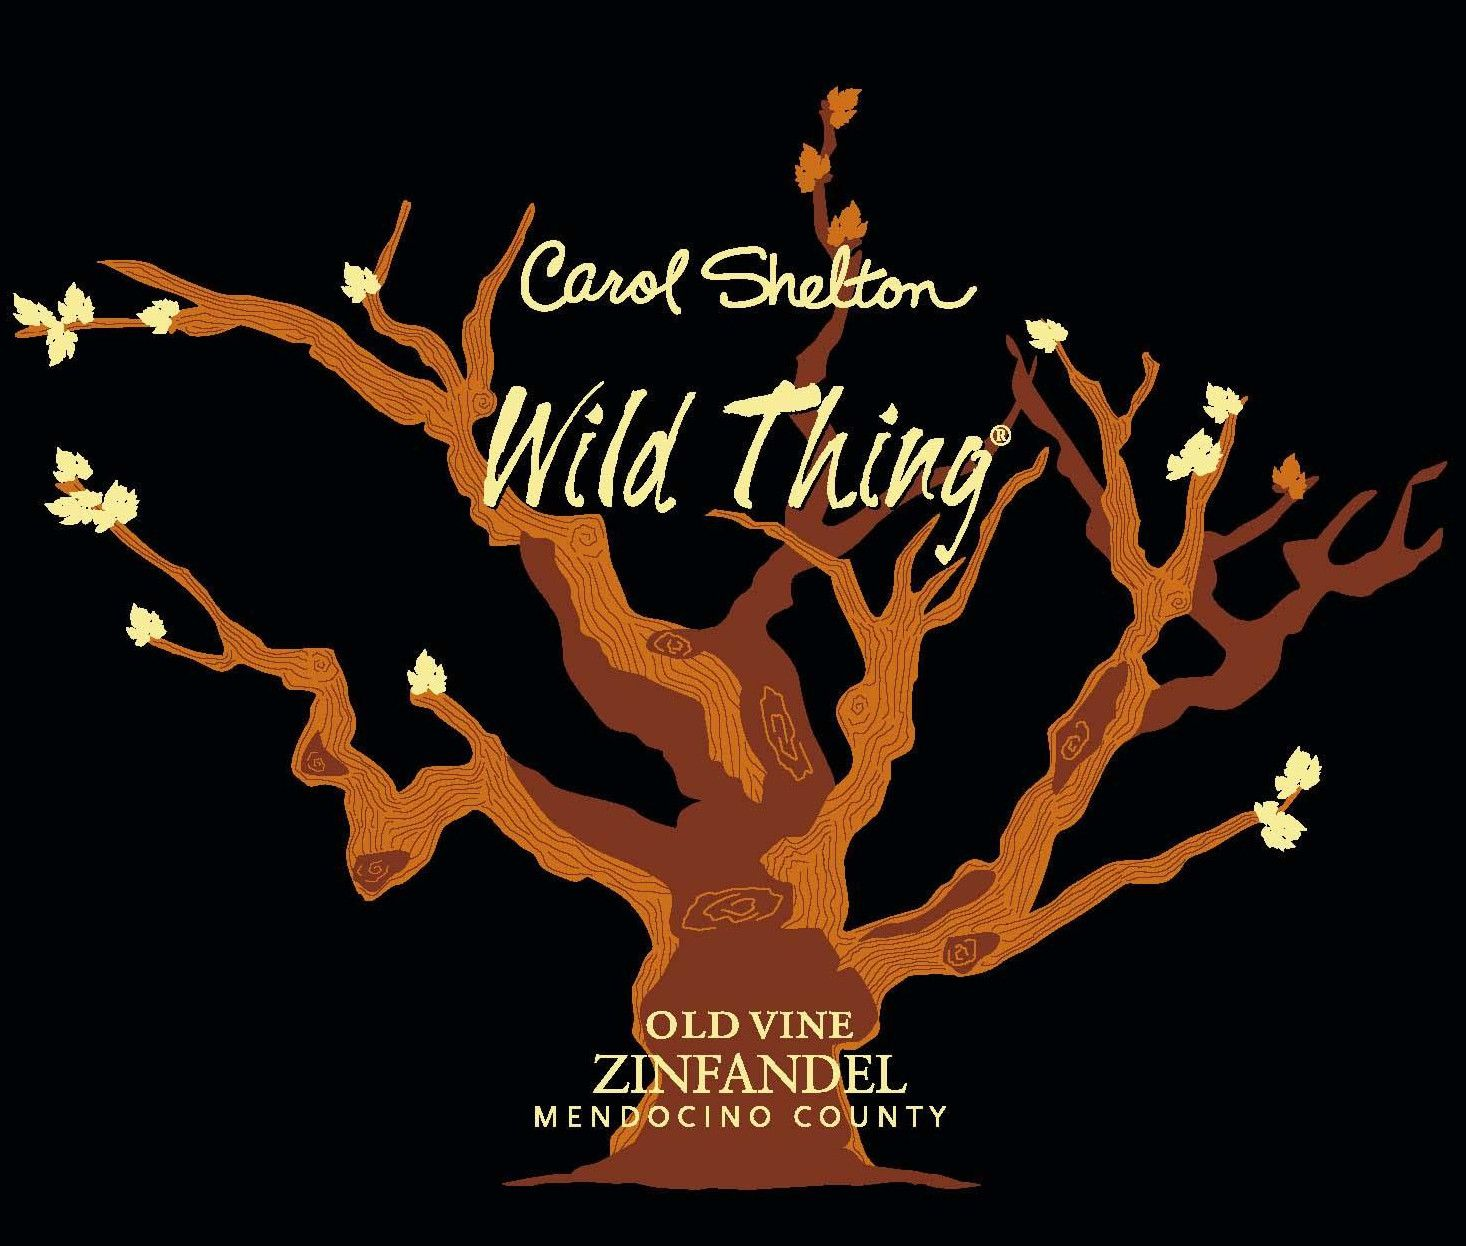 Carol Shelton Wild Thing Zinfandel 2010 Front Label